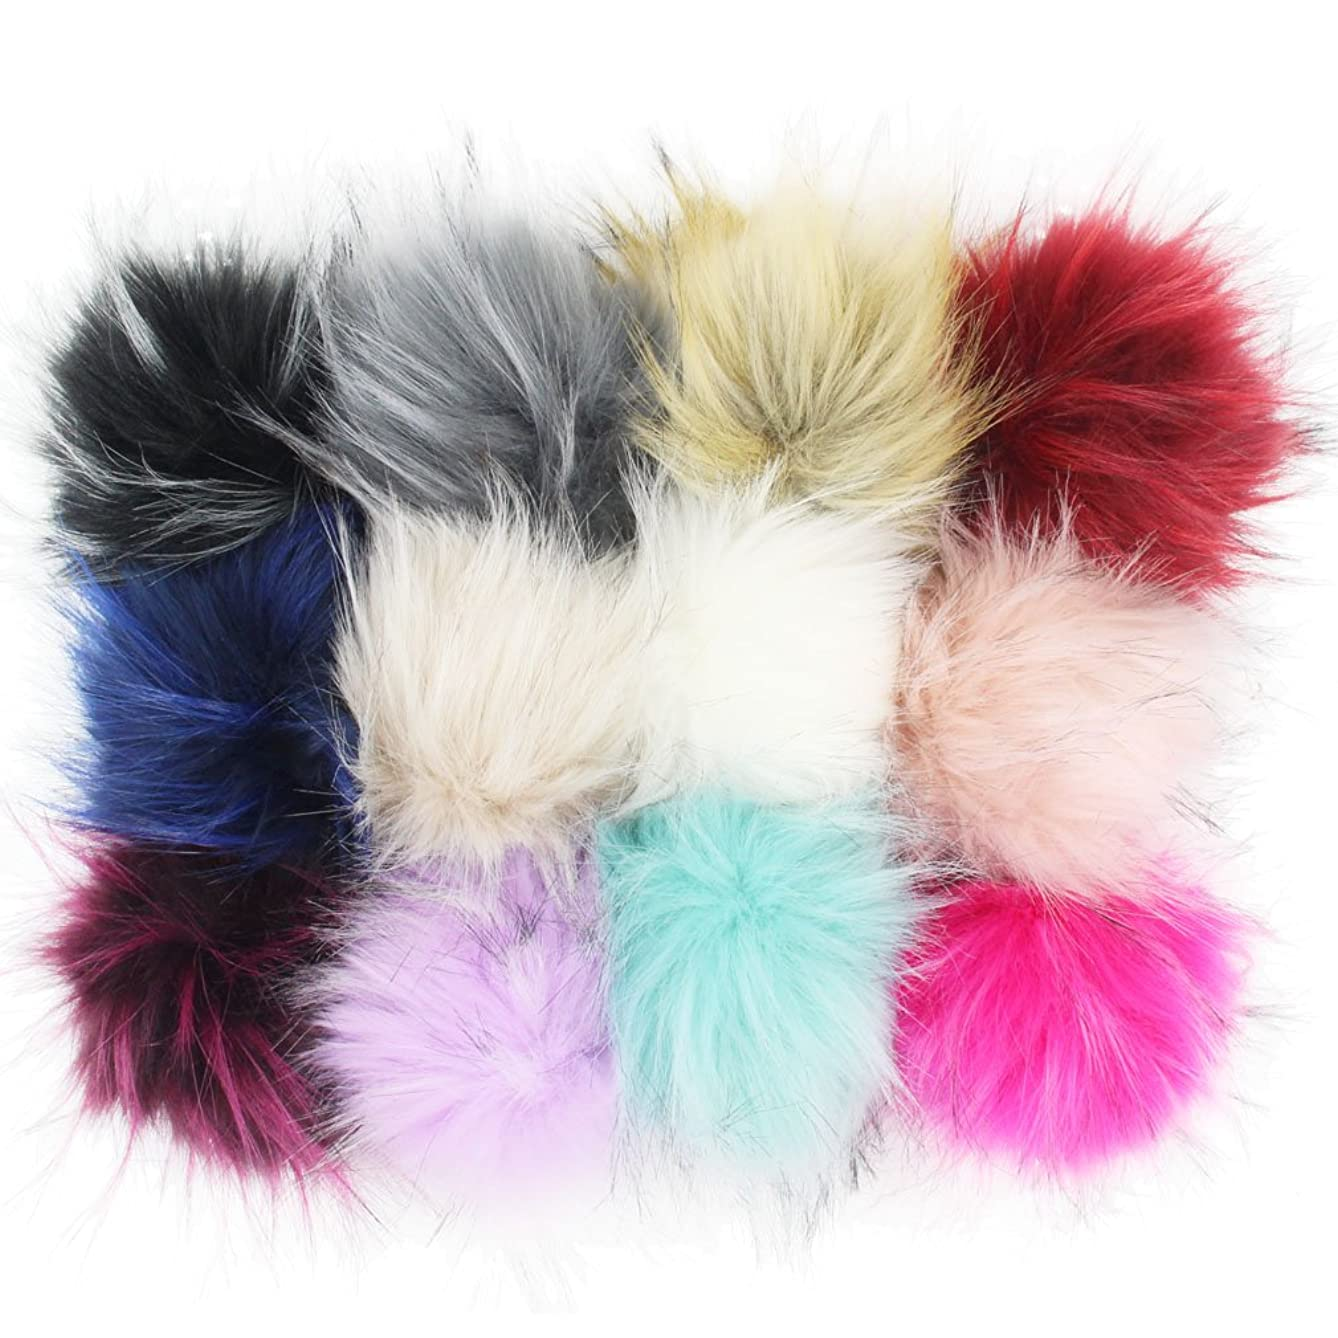 DIY 12pcs Faux Raccoon Fur 11cm Pom Pom Ball for Knitting Hat DIY Accessories (Mix Colors)